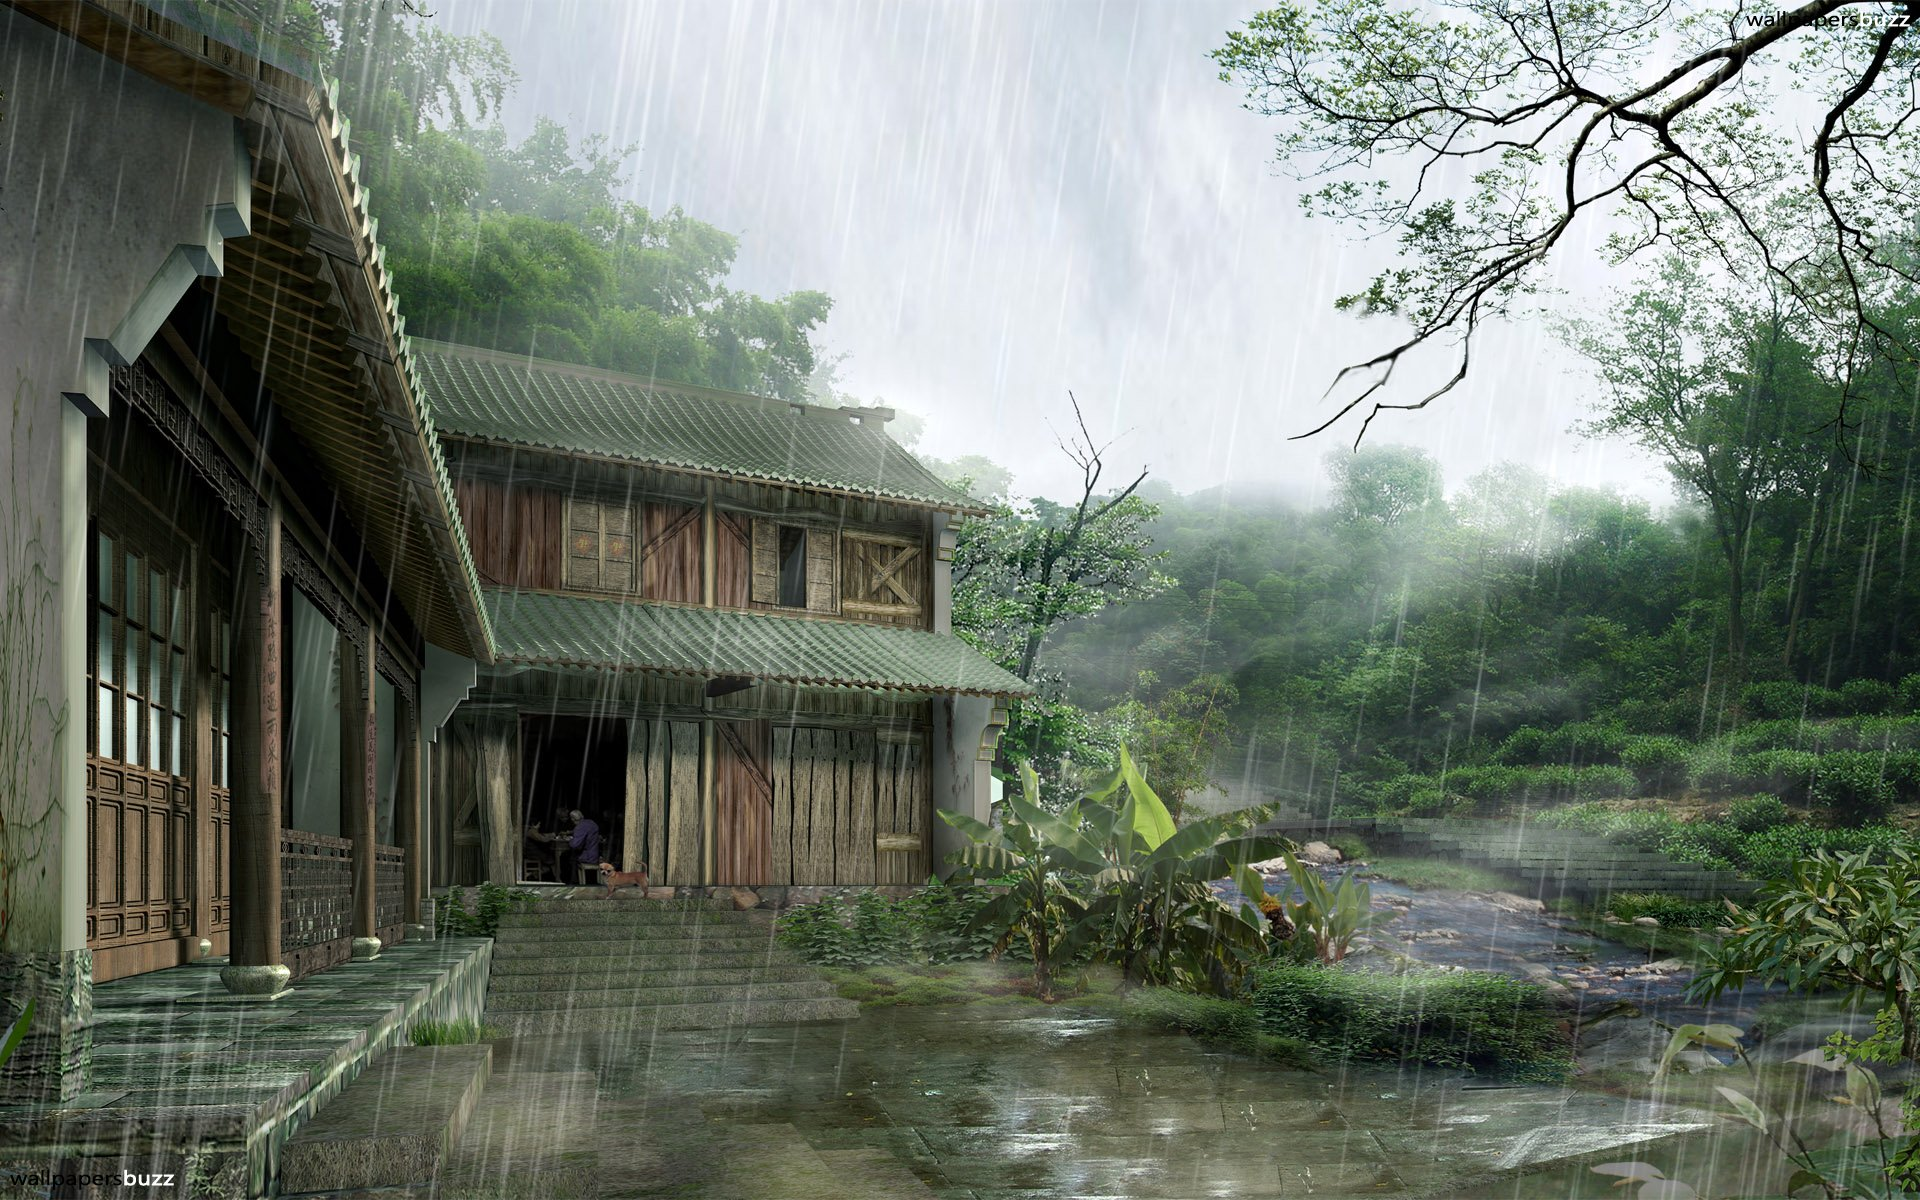 Rainy Season HD Wallpapers, Rain makes our life most beautiful .So, Rainy season